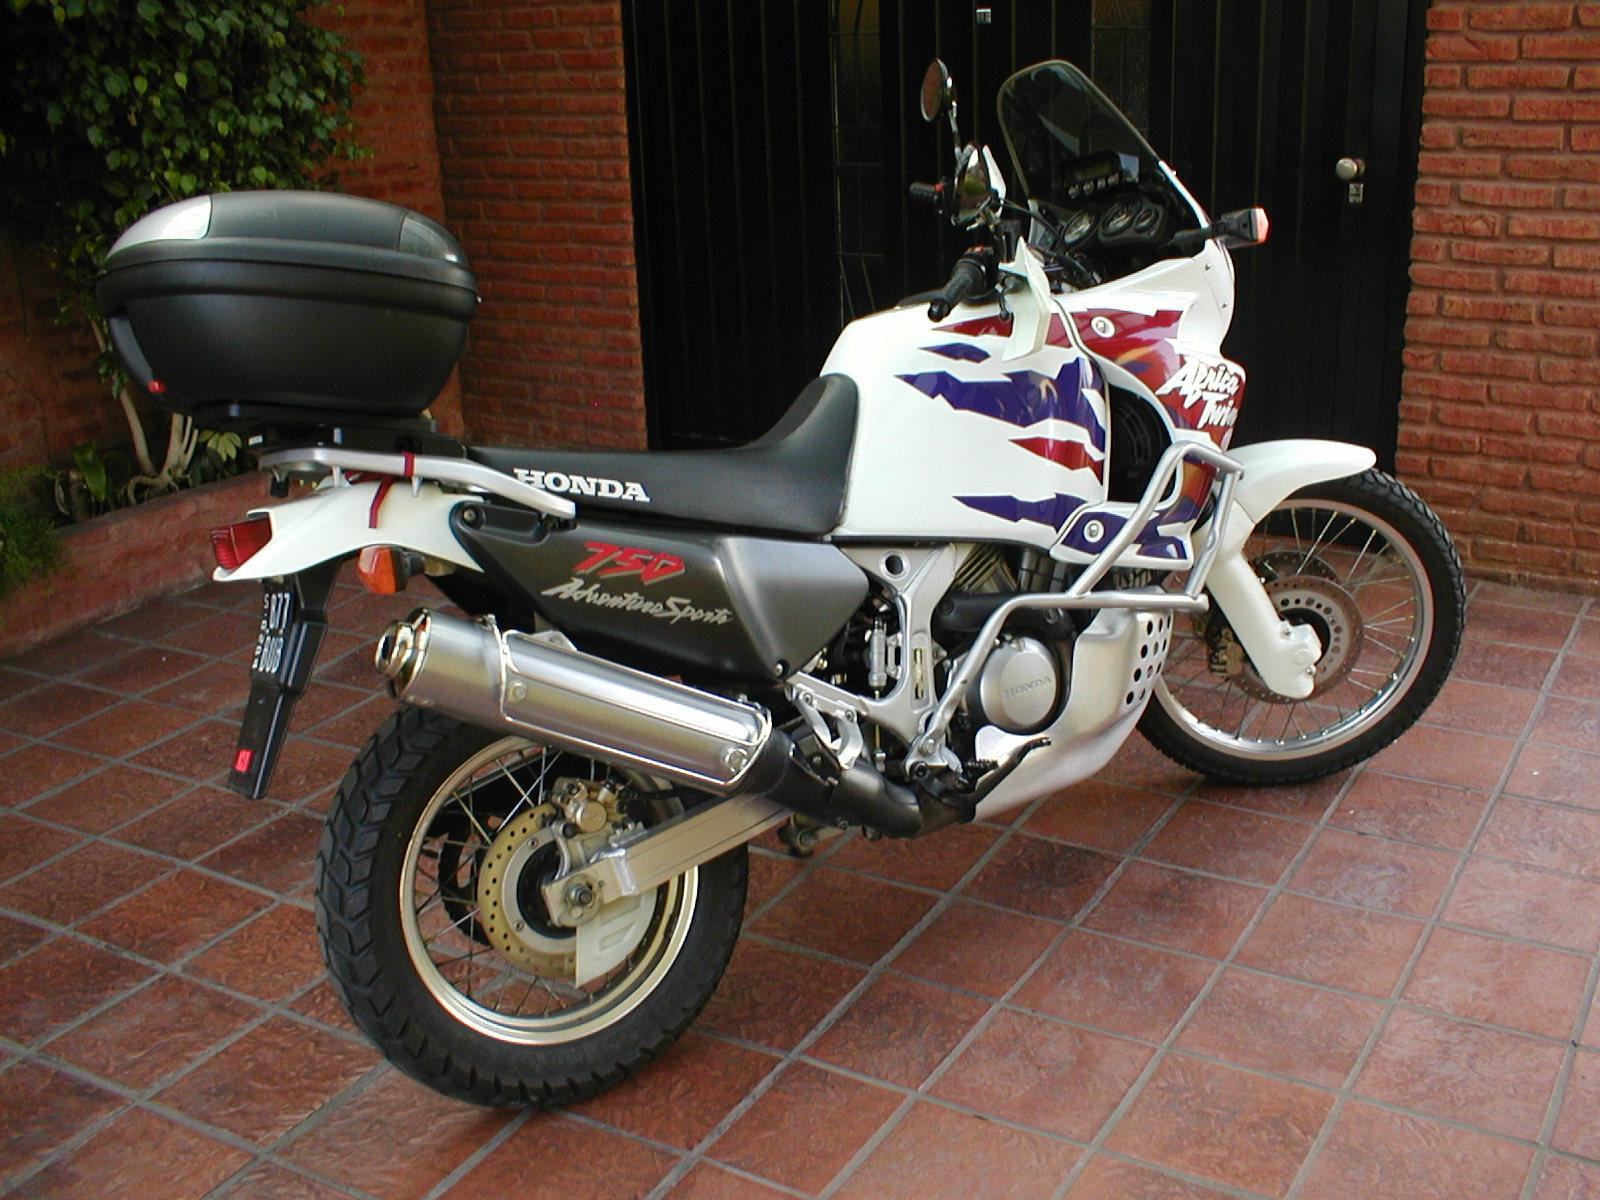 Honda XRV 750 Africa Twin photo 25177